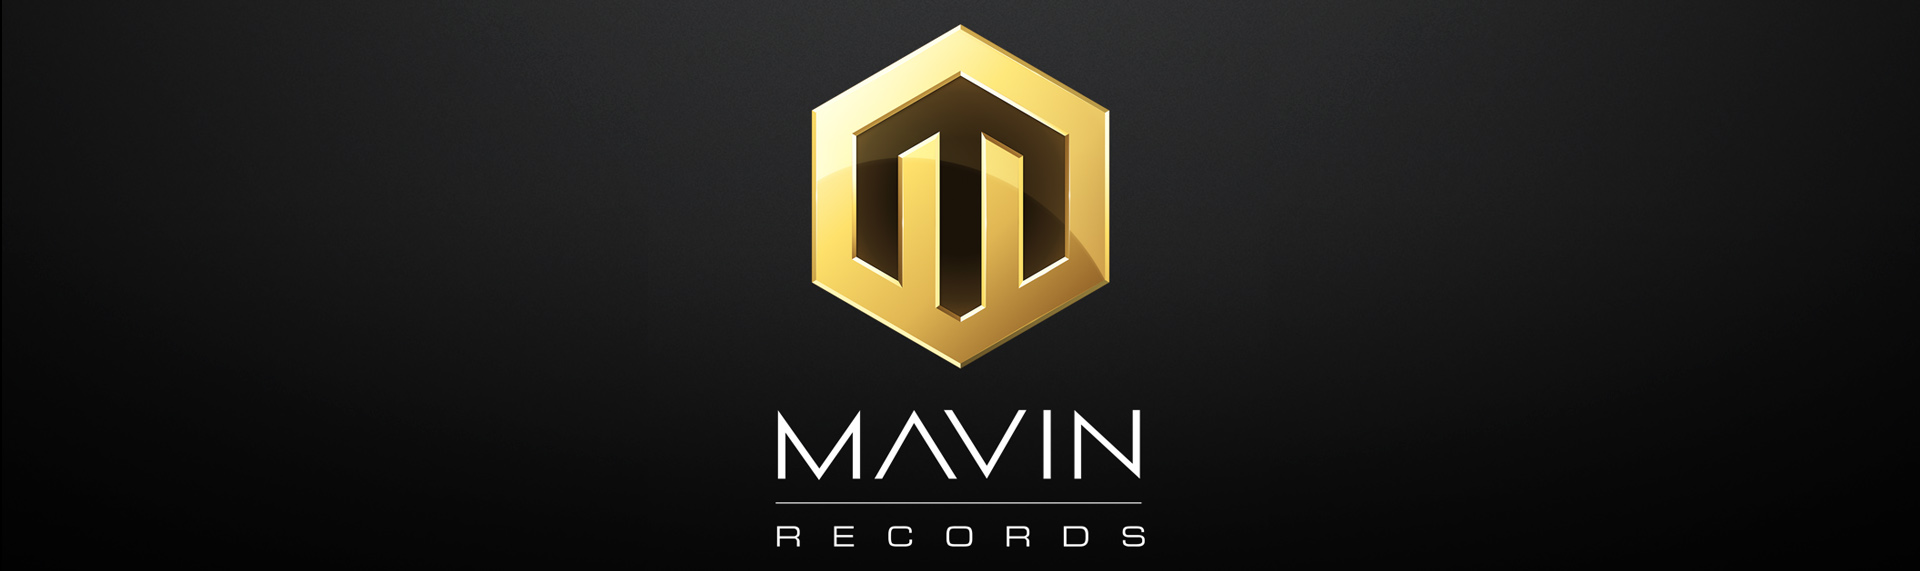 MAVIN Records  Brand Identity Design  Mavin Records is a Nigerian-based record label founded by recording artist and record producer Don Jazzy. They contracted The Skins Factory to design a new brand identity for their Lagos-based label. We designed the new symbol to be utilized on both web and print platforms in a faux gold design language. This would allow printers to use a gold foil when printing shirts, posters and swag that really makes the logo pop.